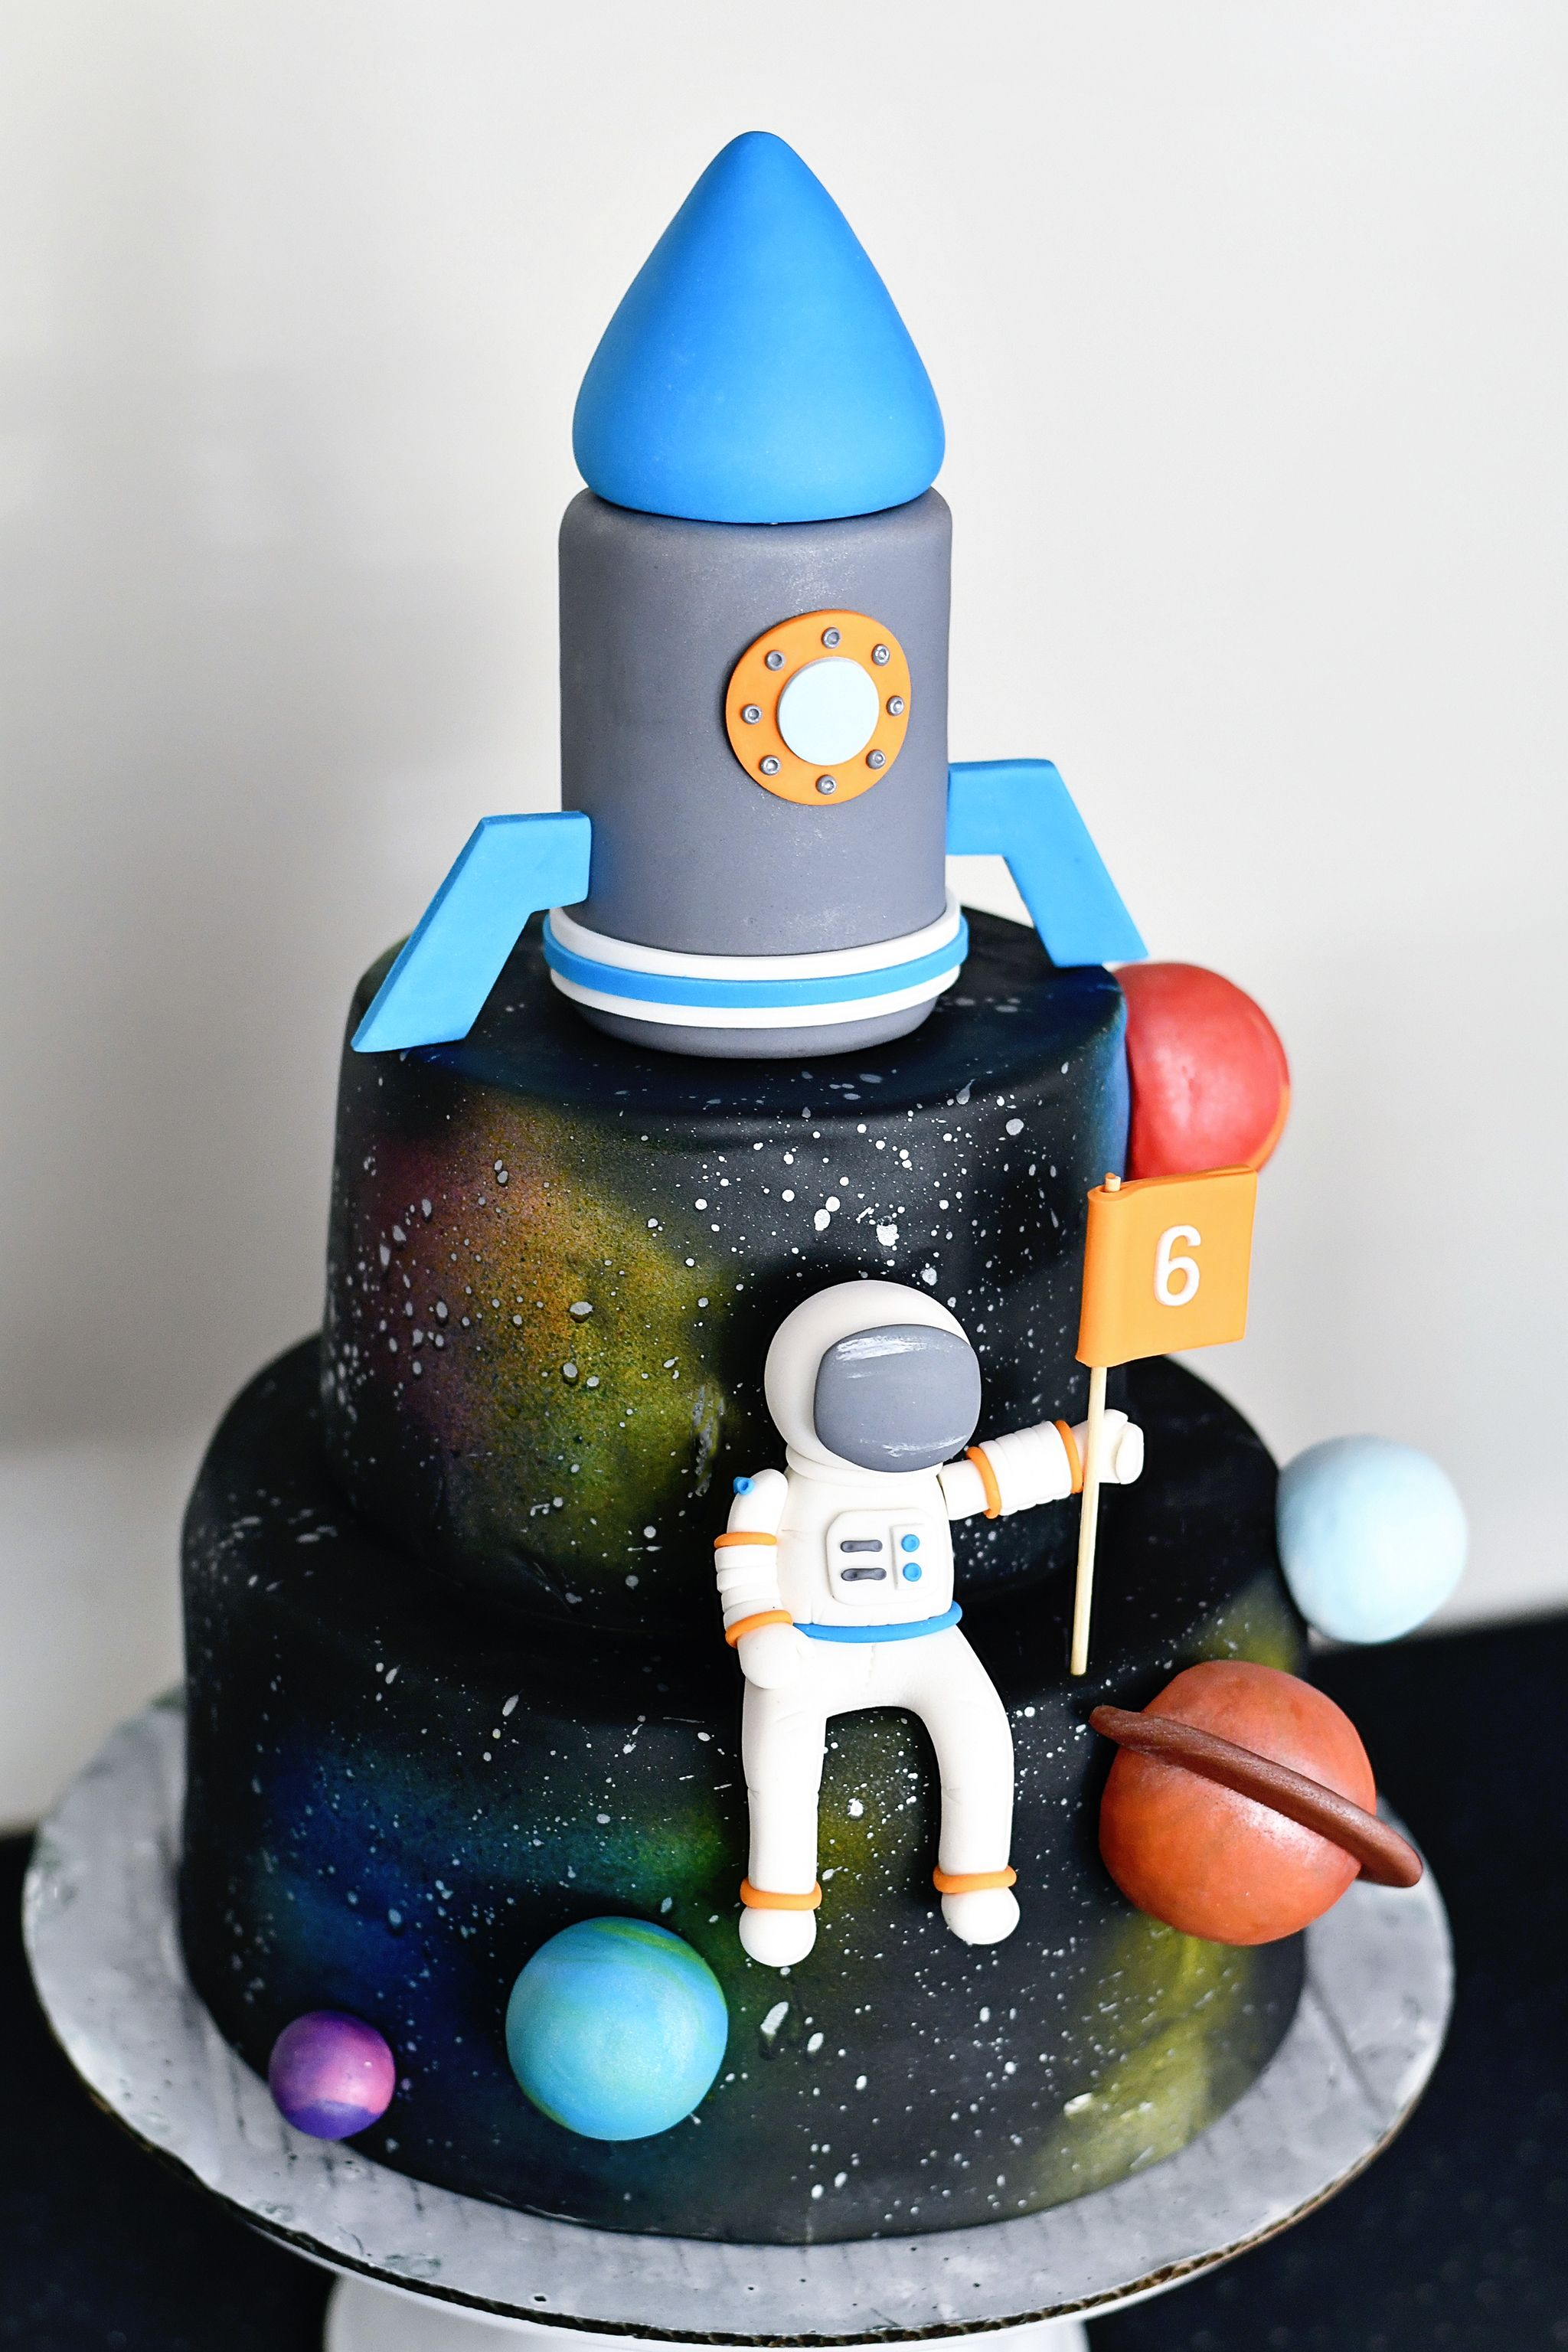 Tremendous Throw A Space Themed Birthday Party Thats Out Of This World In Funny Birthday Cards Online Sheoxdamsfinfo